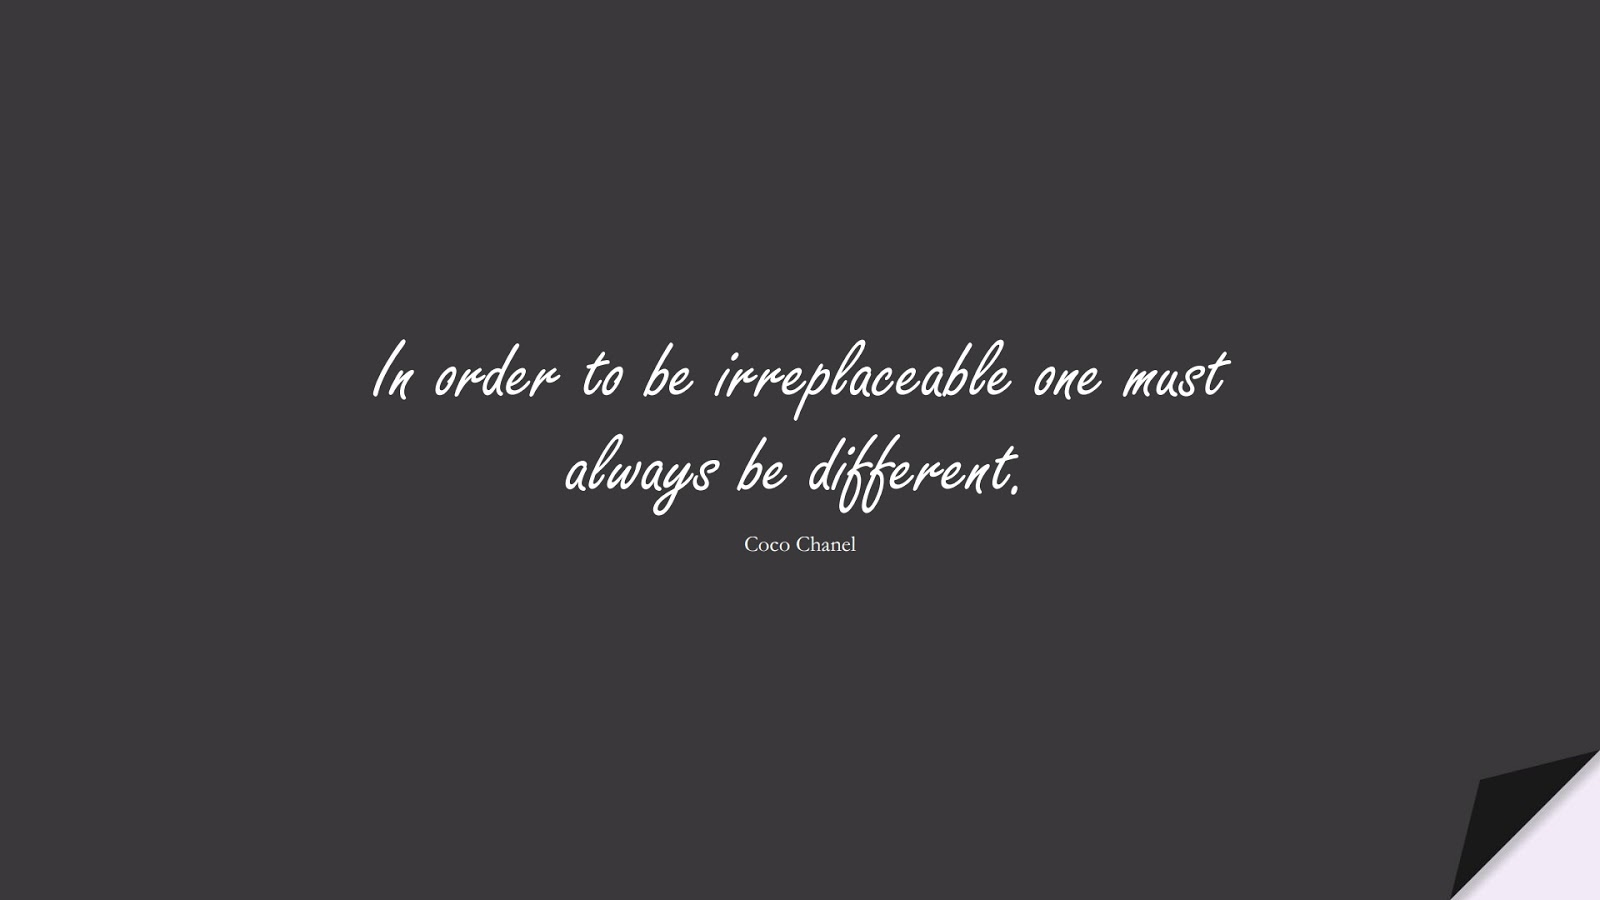 In order to be irreplaceable one must always be different. (Coco Chanel);  #ShortQuotes